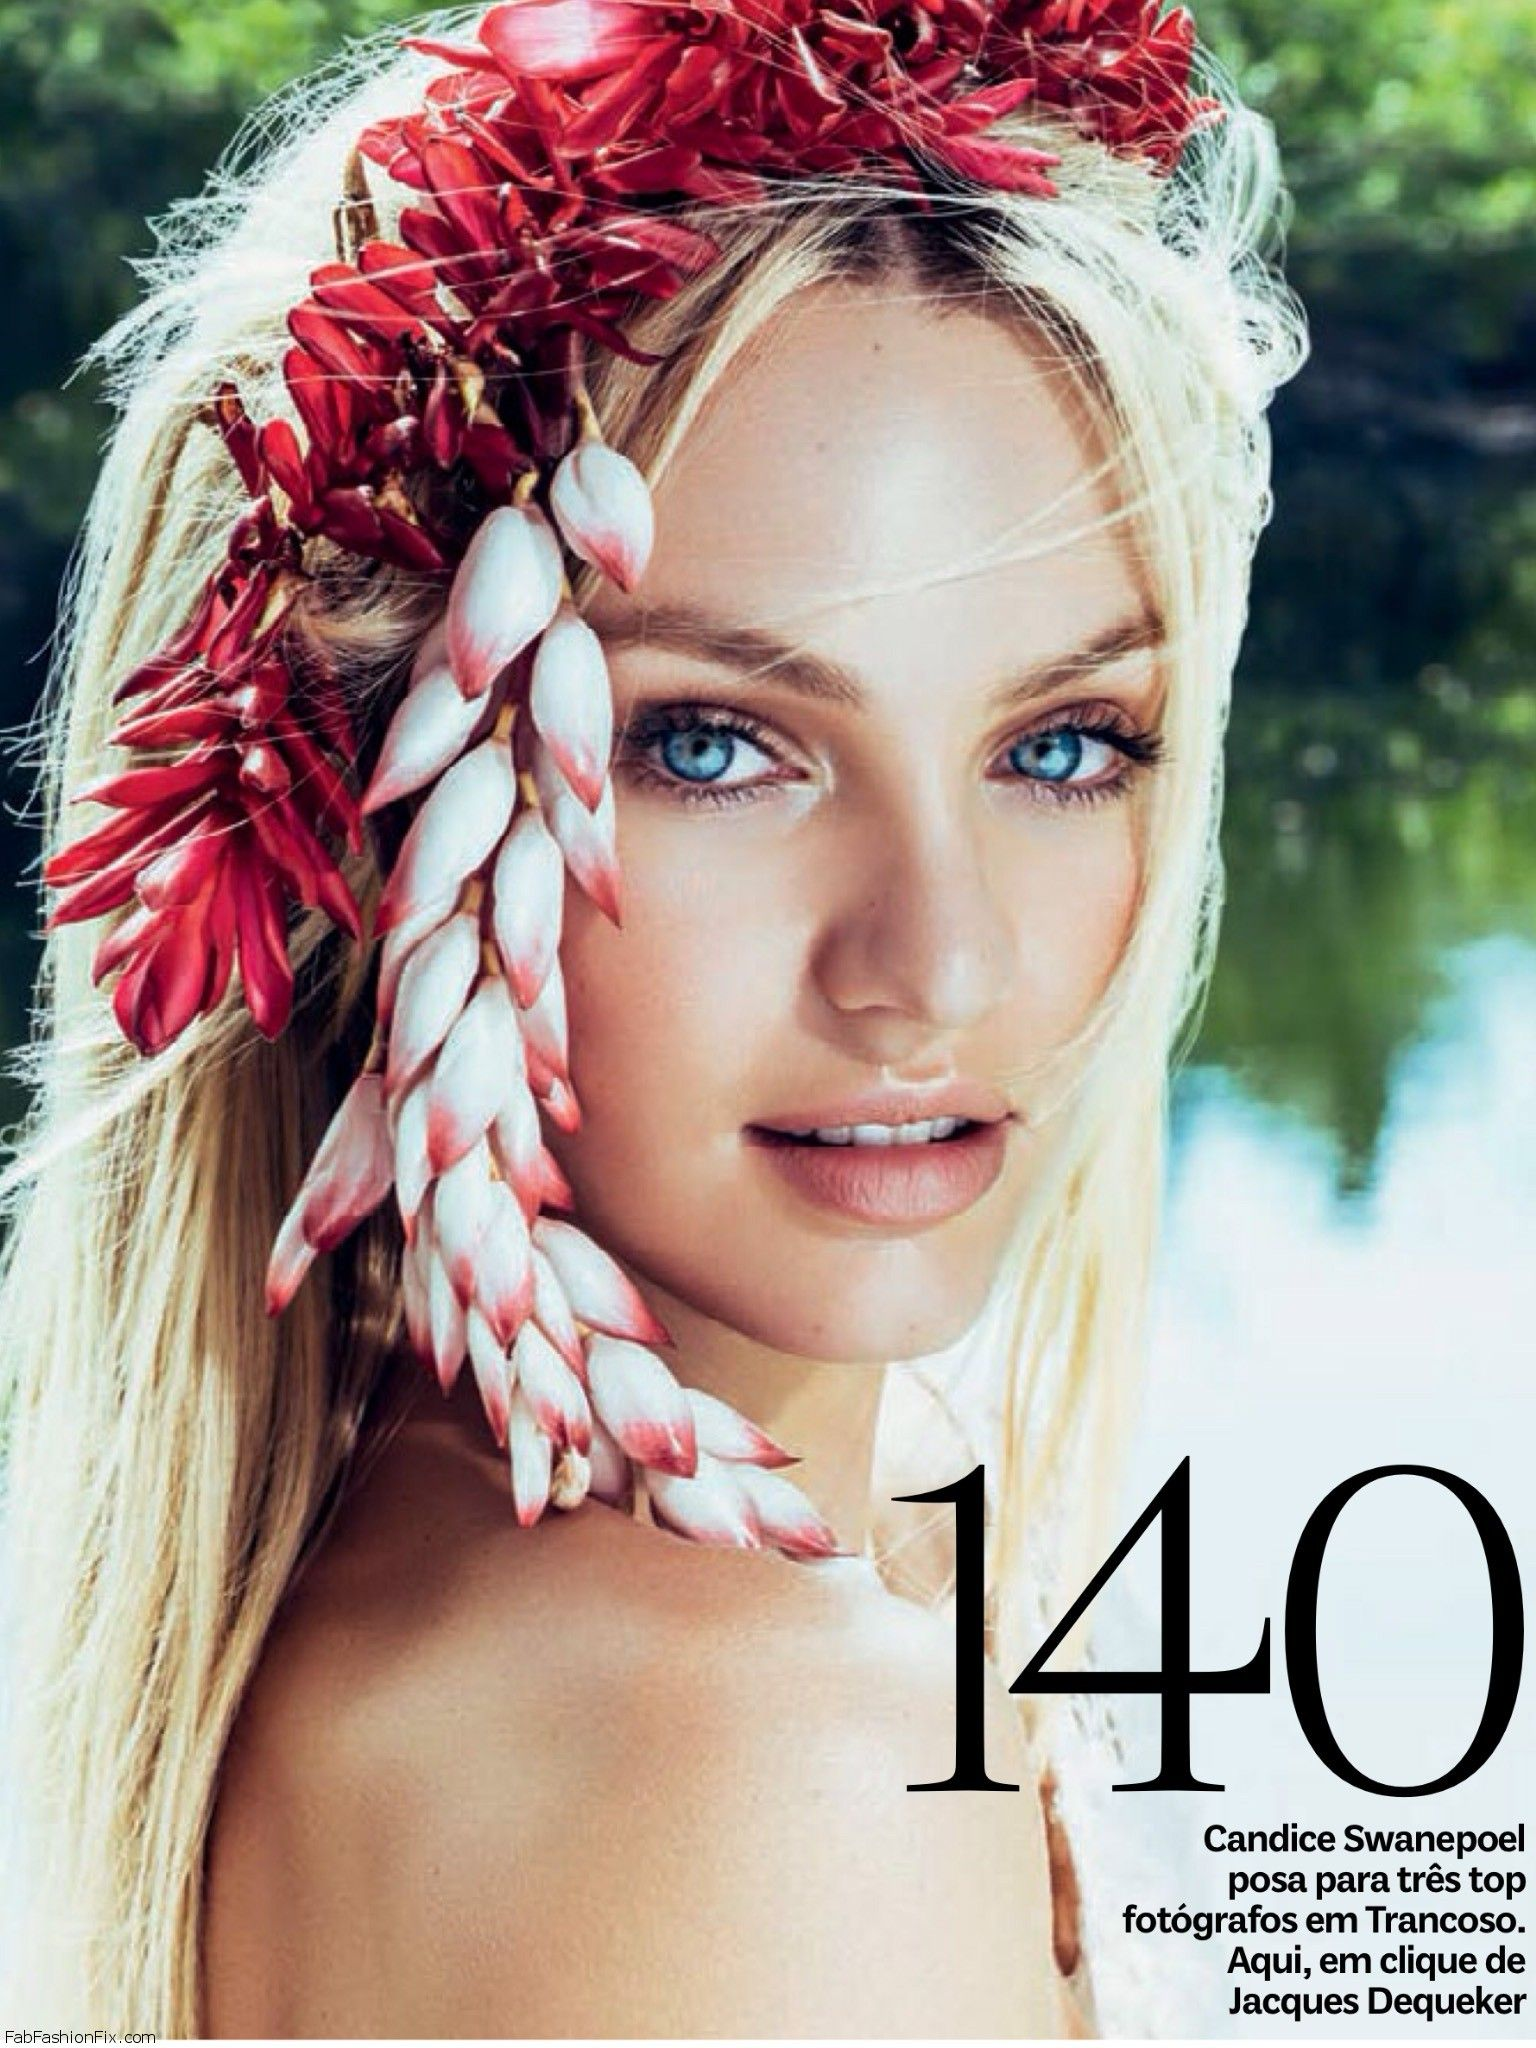 Fashion_Scans_Remastered.Candice_Swanepoel.VOGUE_BRAZIL.January_2014.Scanned_by_VampireHorde.HQ.2